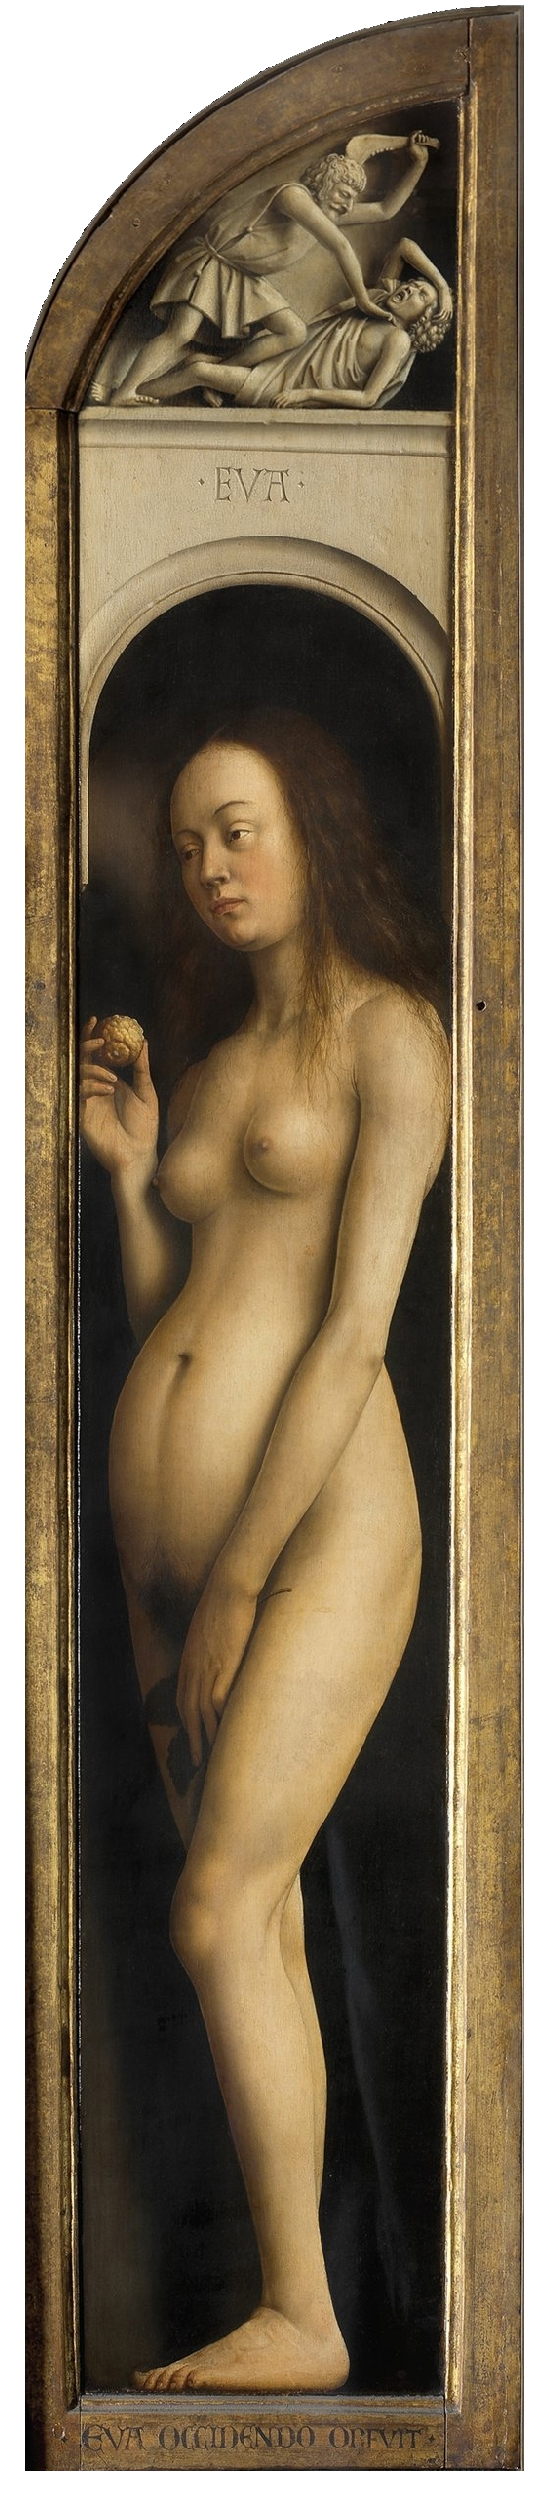 Jan van Eyck Eve